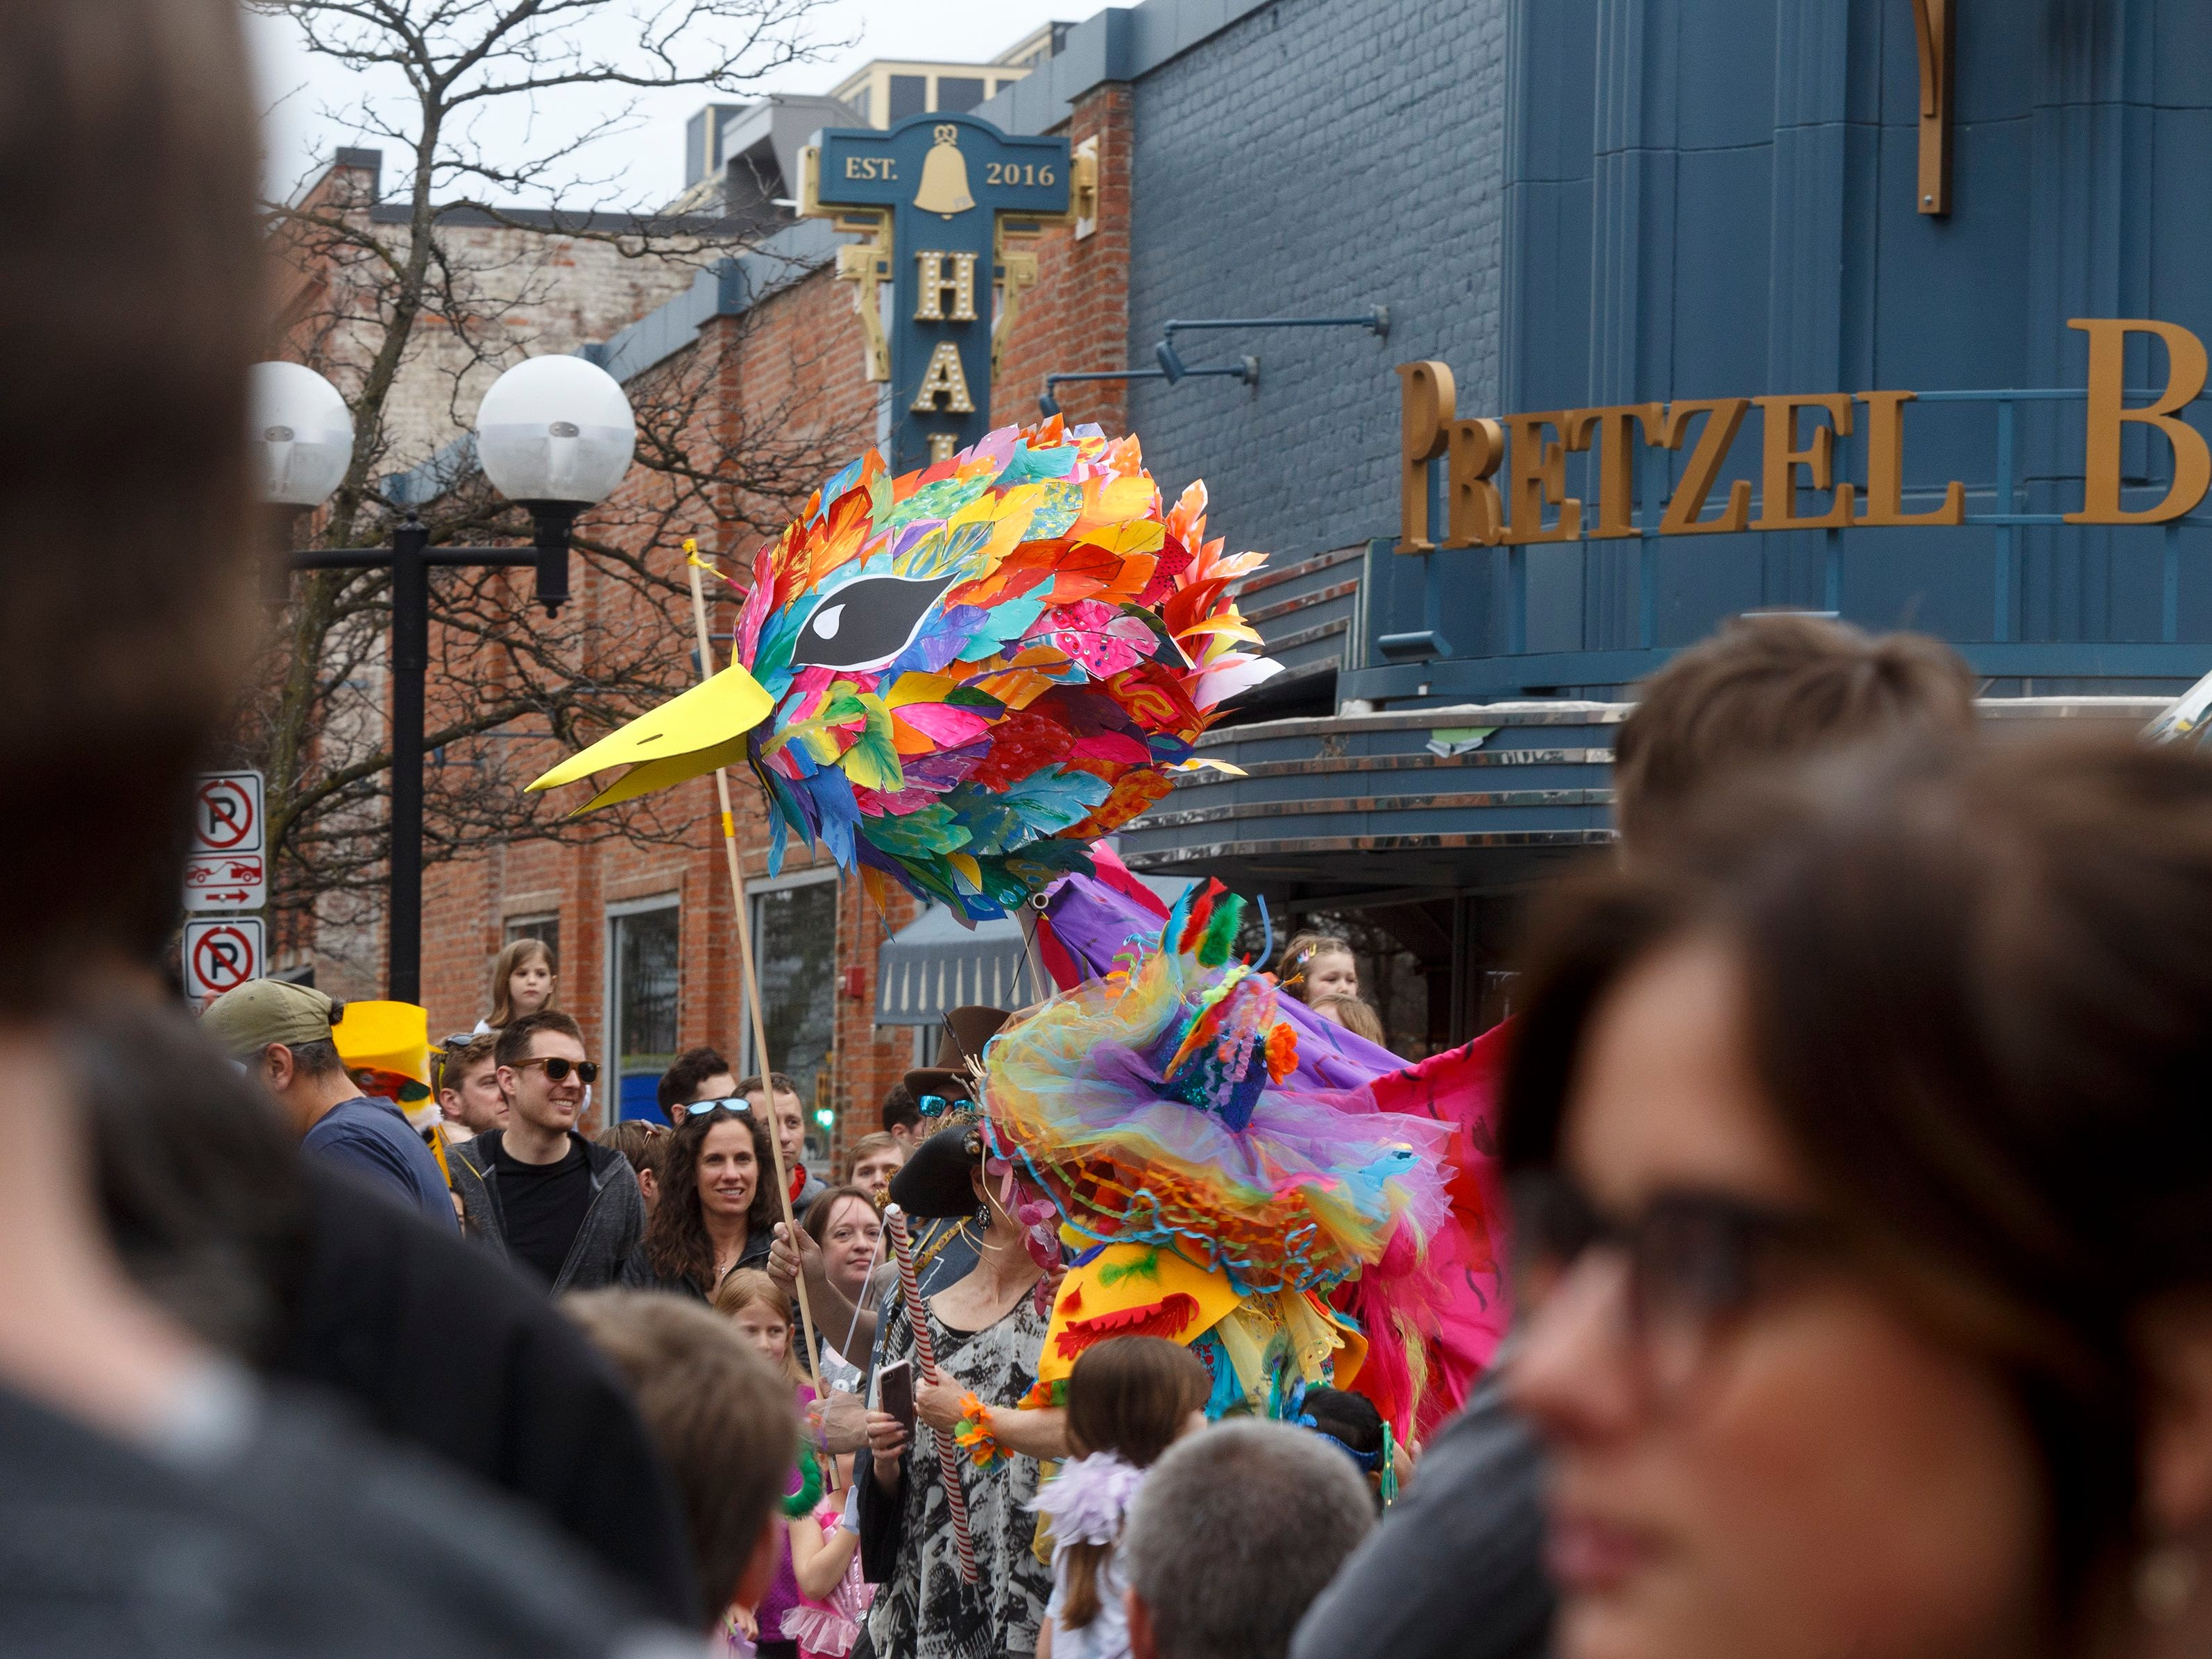 Puppets take over South Main Street during the annual FestiFools parade on Sunday, April 7, 2019 in downtown Ann Arbor.